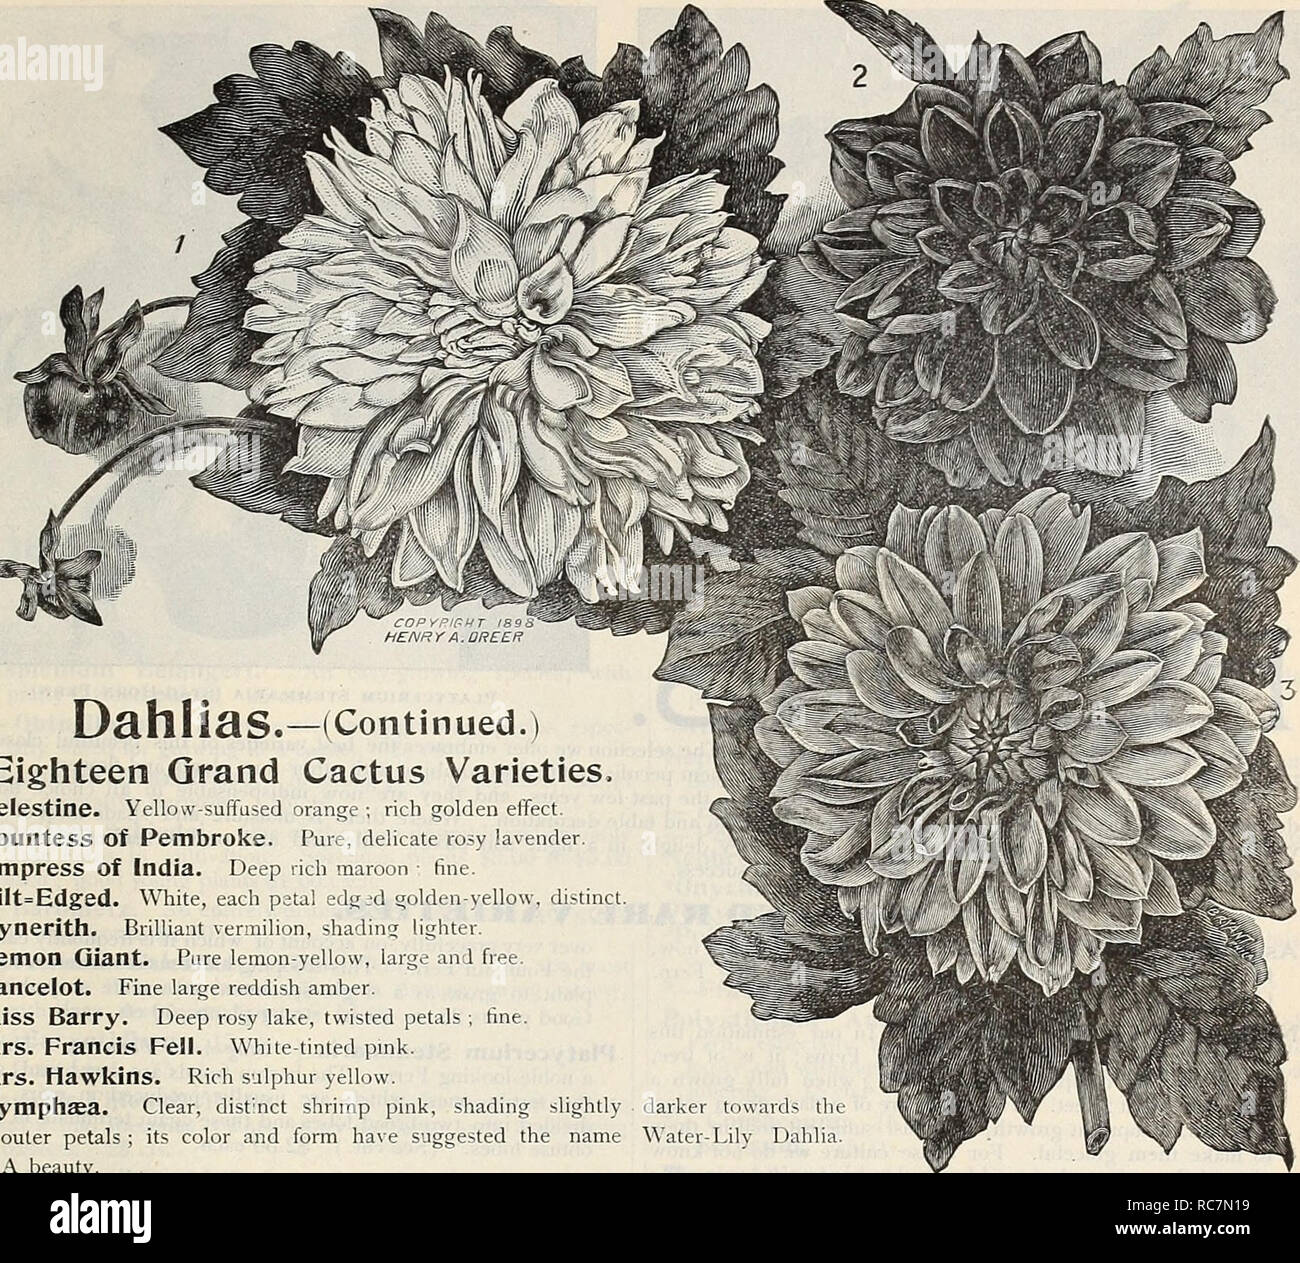 . Dreer's garden calendar : 1899. Seeds Catalogs; Nursery stock Catalogs; Gardening Equipment and supplies Catalogs; Flowers Seeds Catalogs; Vegetables Seeds Catalogs; Fruit Seeds Catalogs. GARDEN AND GREENHOUSE PLANTS. 117. Dahlias. Eighteen Grand Cactus Varieties, Celestine. Yellow-suffused orange ; rich golden effect. Countess Of Pembroke. Pure, delicate rosy lavender. Empress Of India. Deep rich maroon : fine. GiIt=Edged. White, each patal edgid golden-yellow Kynerith. Brilliant vermilion, shading lighter. Lemon Giant. Pure lemon-yellow, large and free. Lancelot. Fine large reddish amber.  - Stock Image